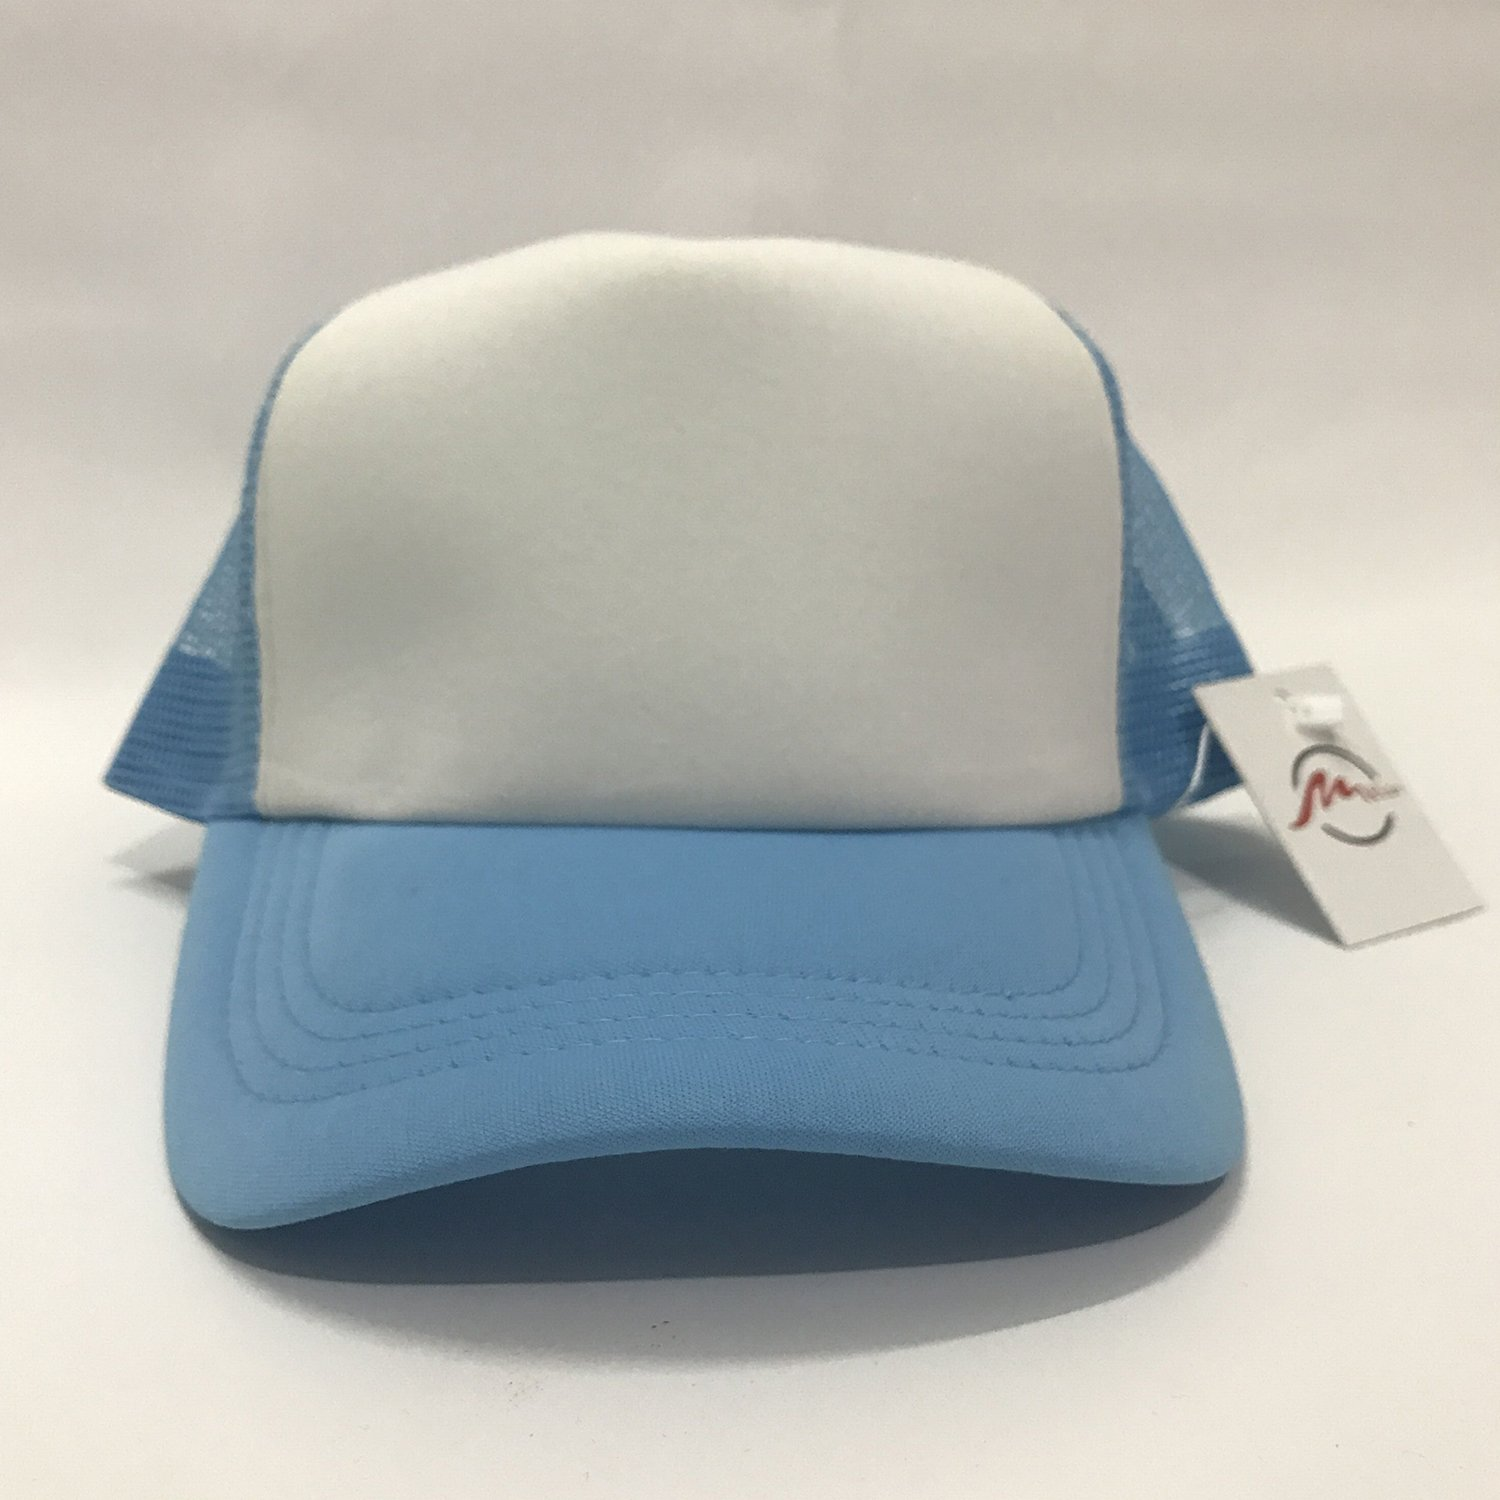 ZMvise Cute Tumblr Nutella Cute Baseball Cap Trucker Mesh Hat Sky Blue at Amazon Mens Clothing store: